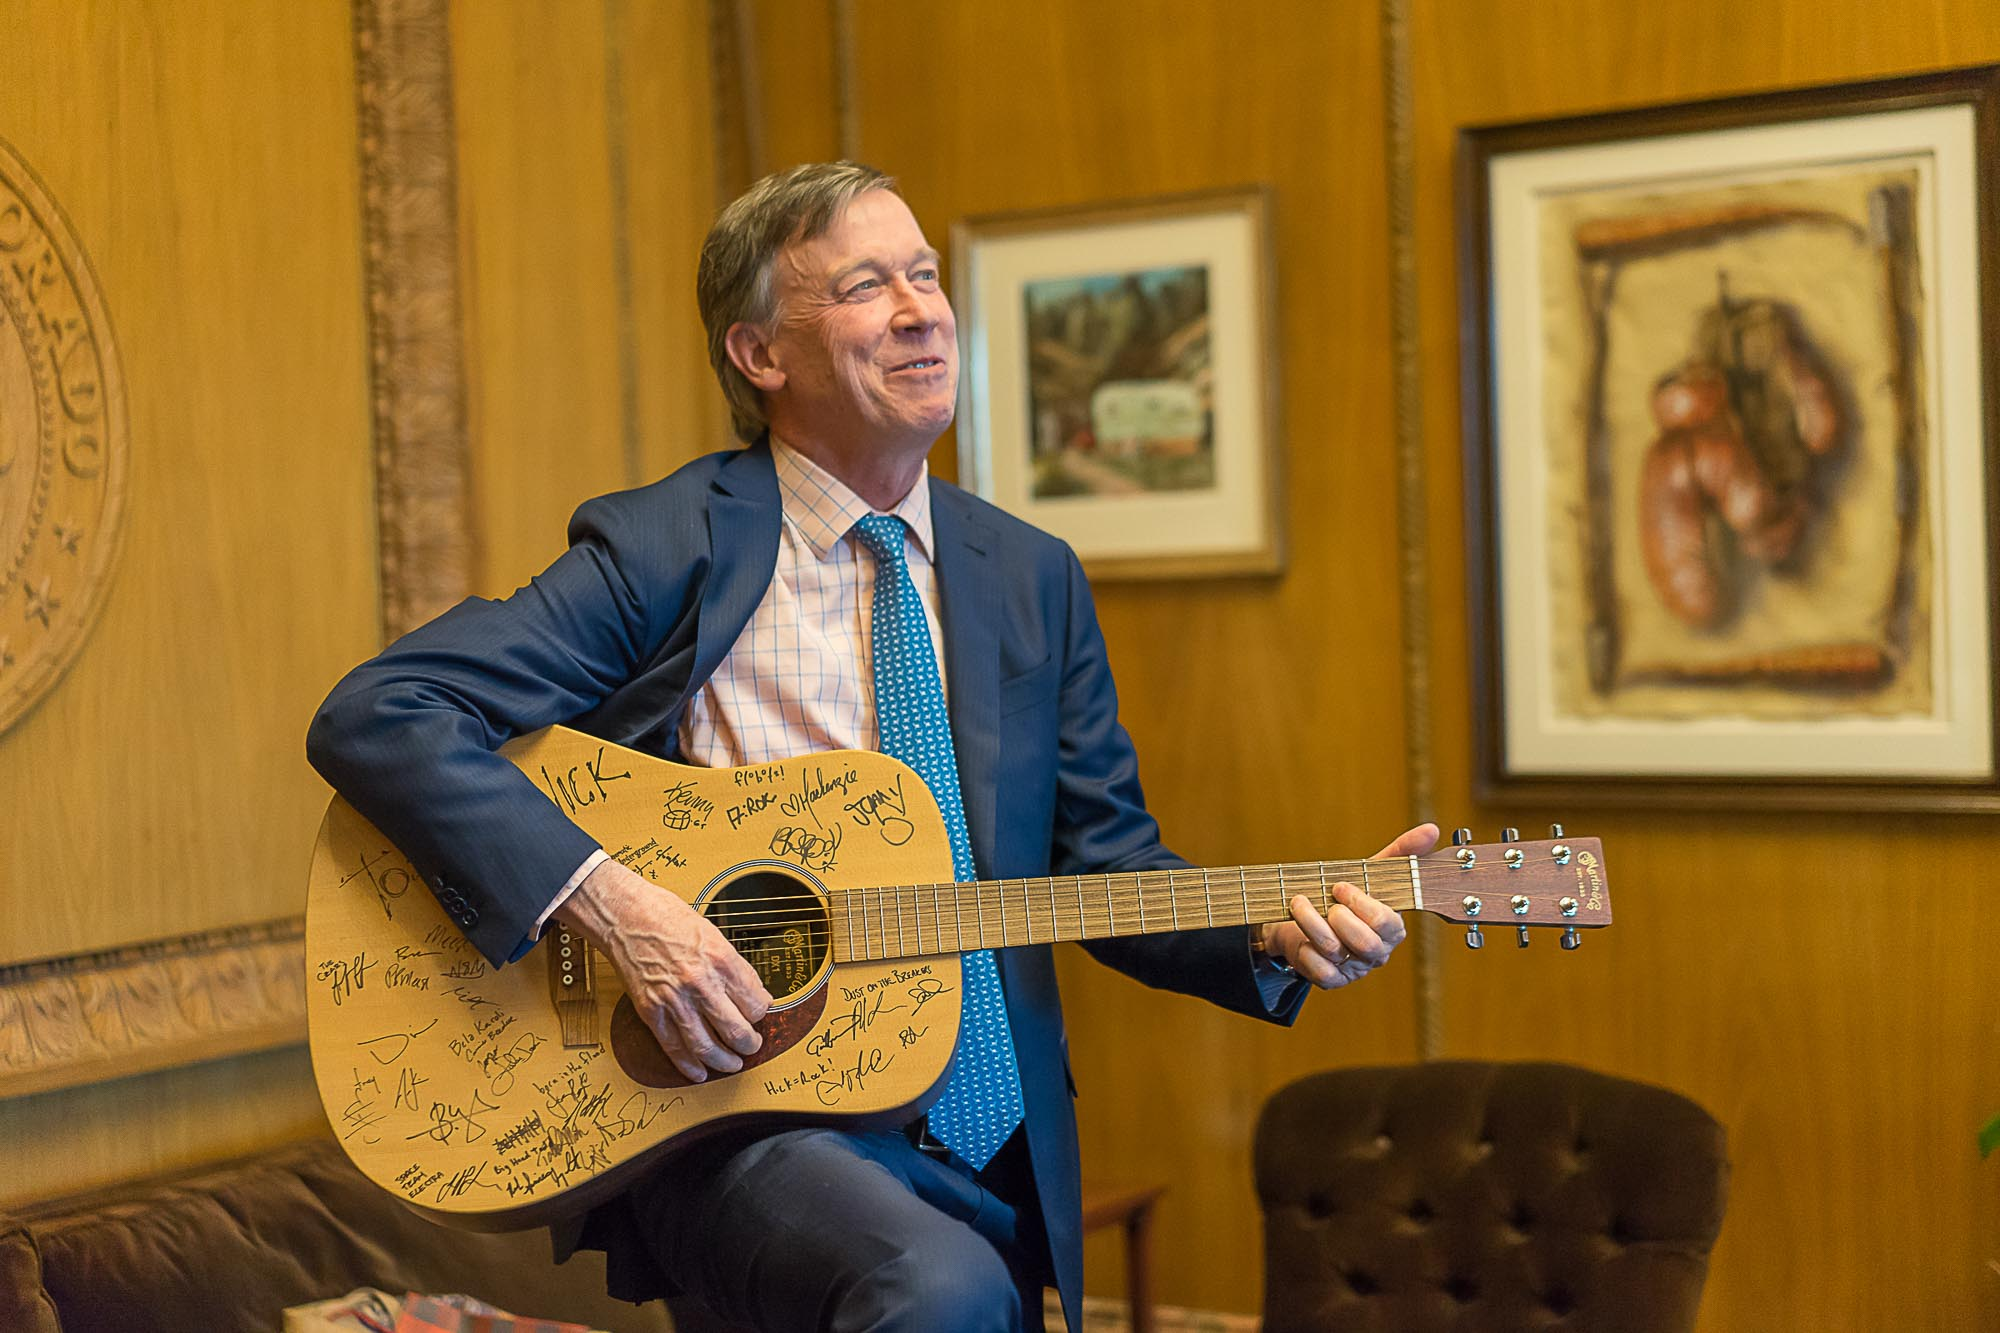 The Governor of Colorado plays a guitar in Denver.